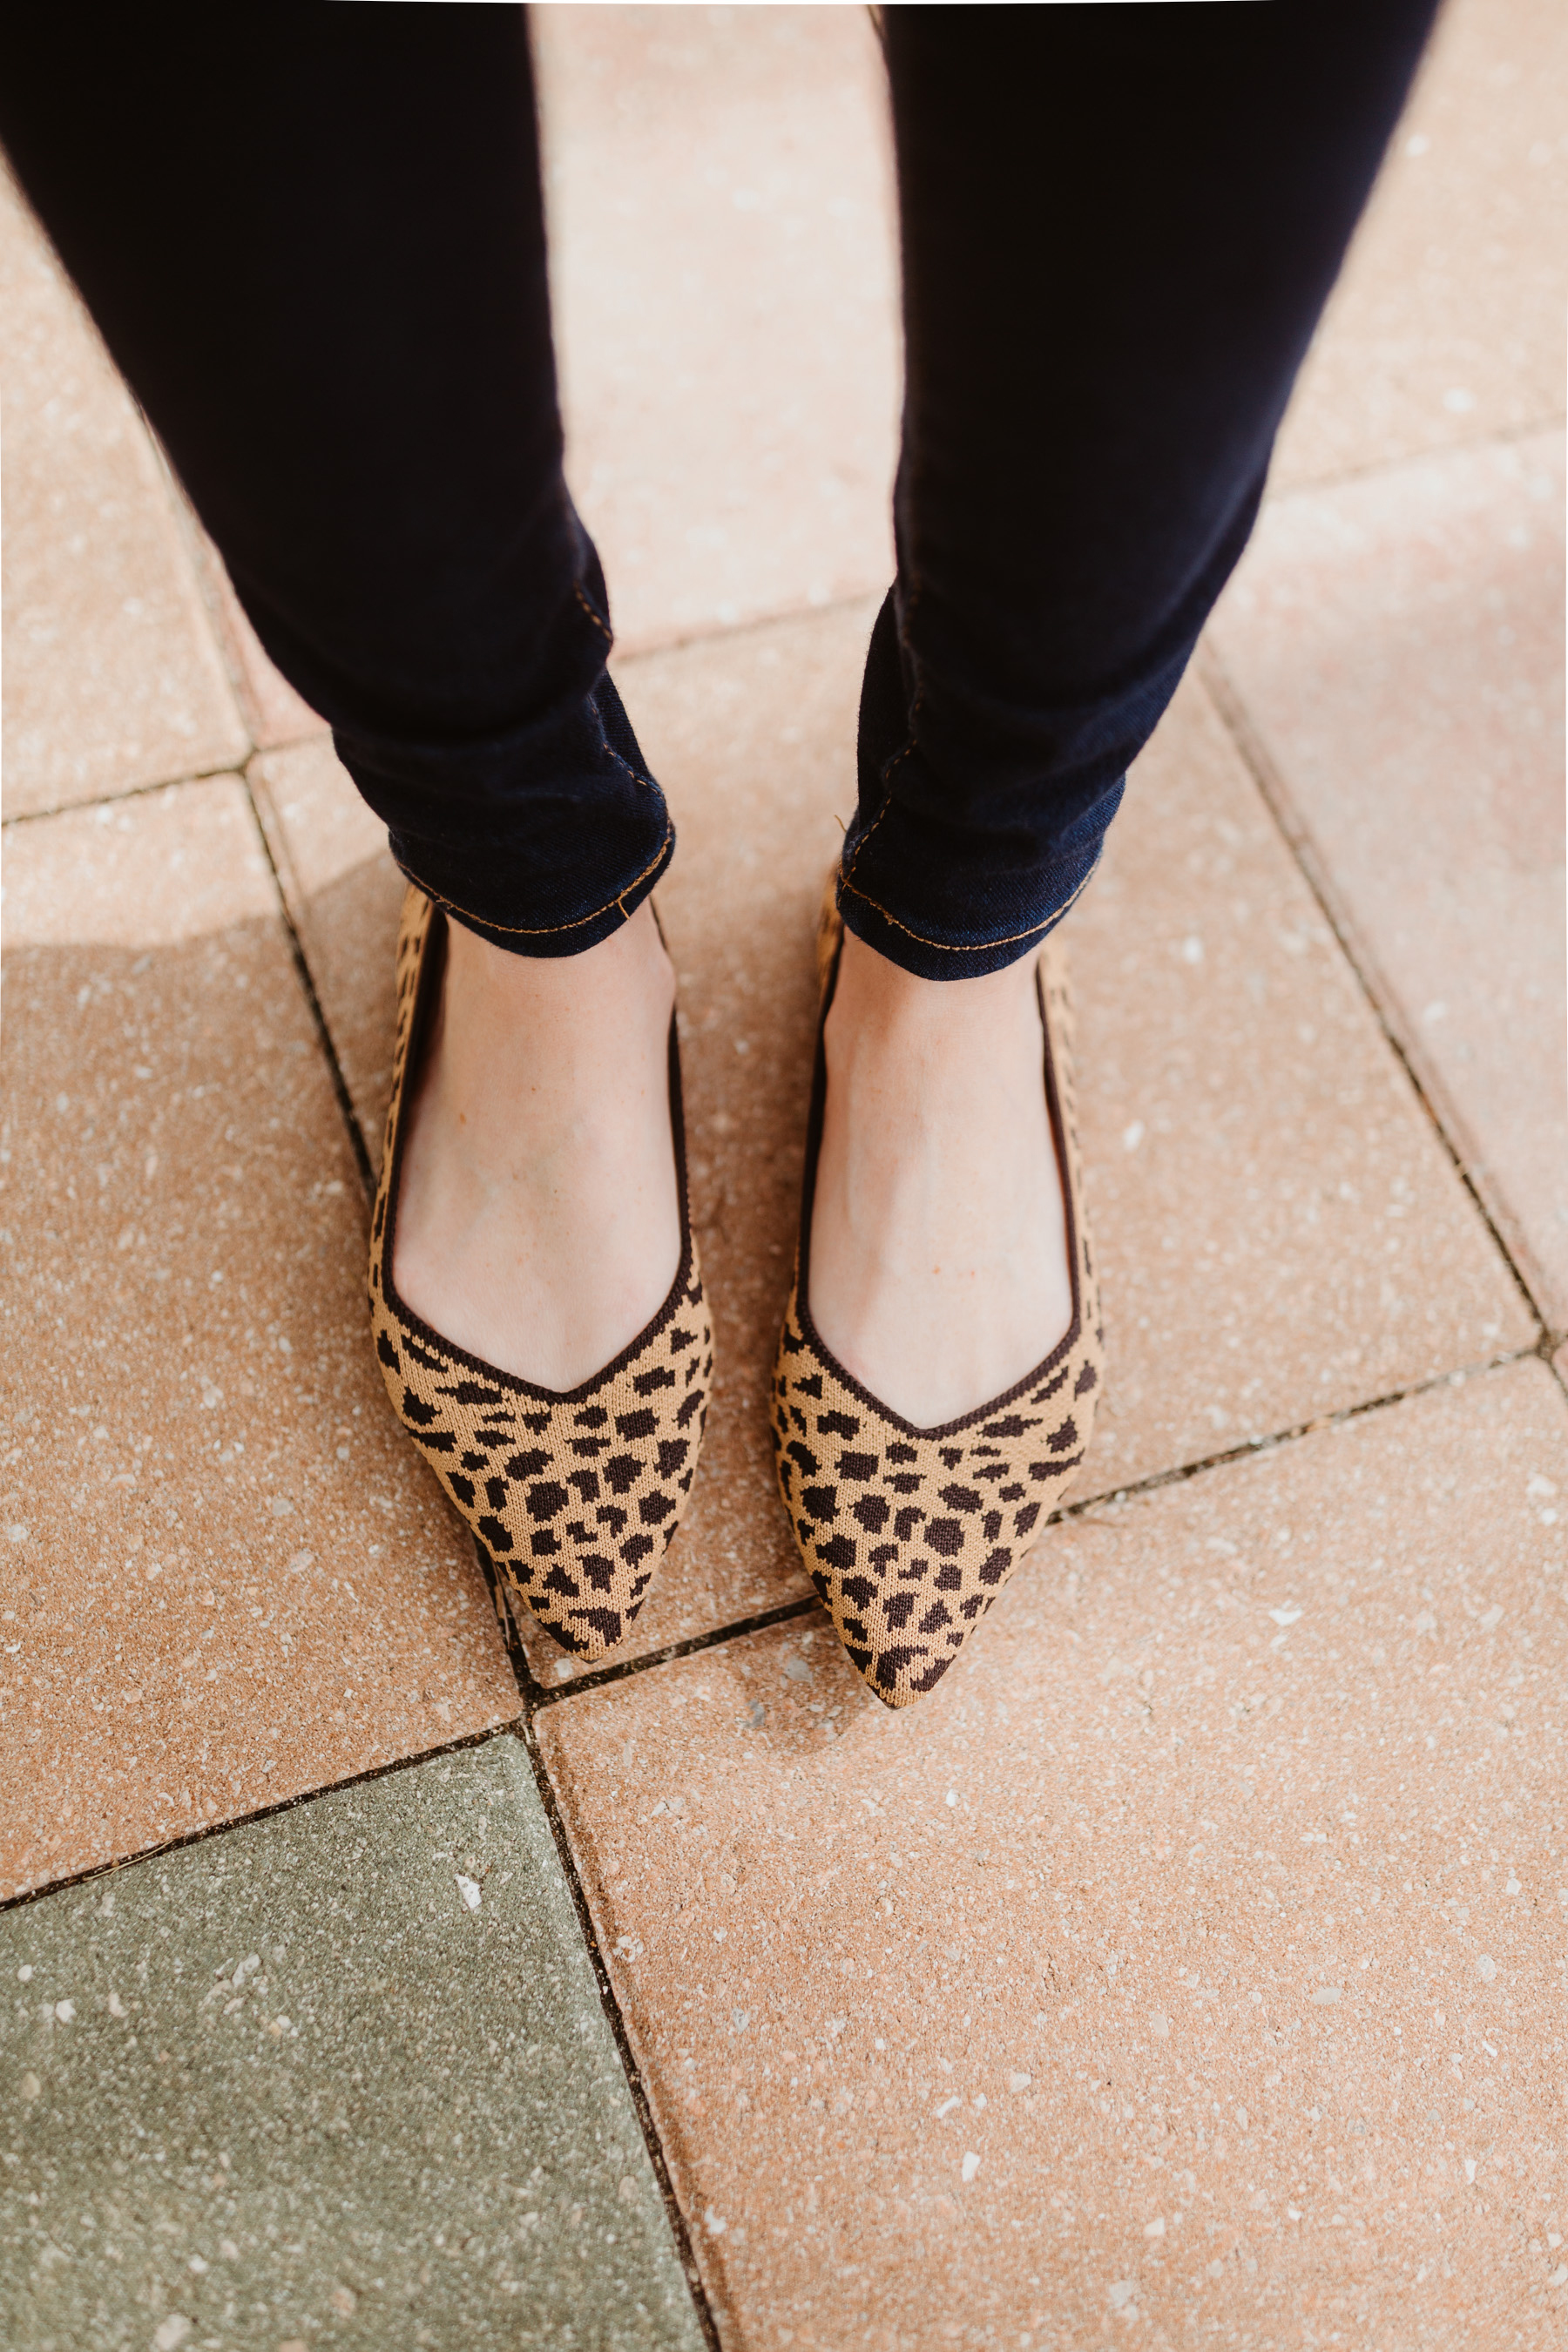 Kelly Larkin is featuring Rothy's Pointed Leopard Flat